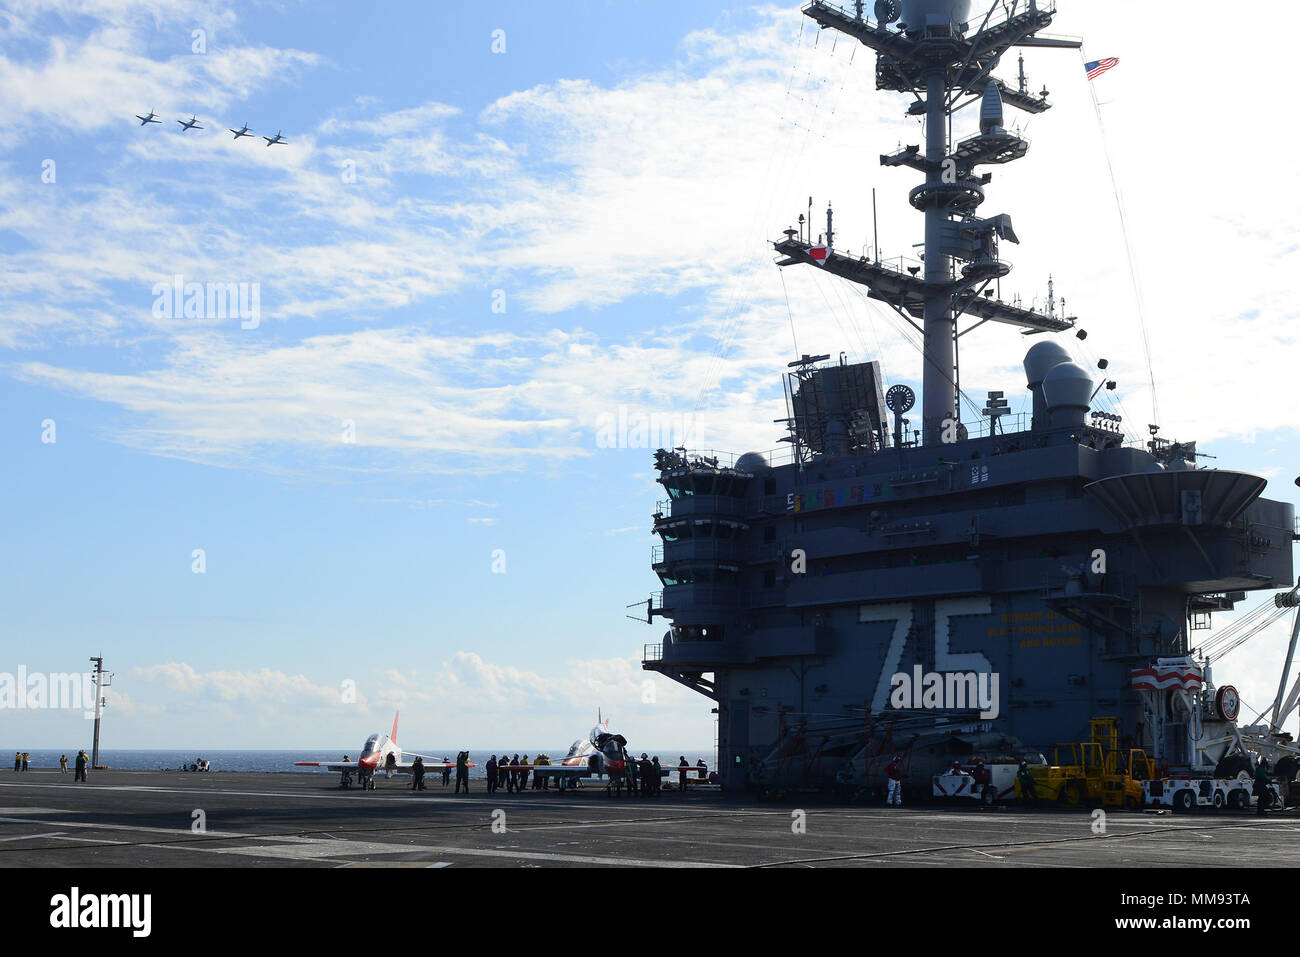 170916-N-PE636-117 ATLANTIC OCEAN (Sept. 16, 2017) T-45C Goshawk, assigned to Training Air Wing (TRAWING) 1, fly over USS Harry S. Truman (CVN 75). Truman is currently underway conducting Carrier Qualifications in preparation for future operations. (U.S. Navy photo by Mass Communication Specialist 2nd Class Anthony Flynn/Released) - Stock Image